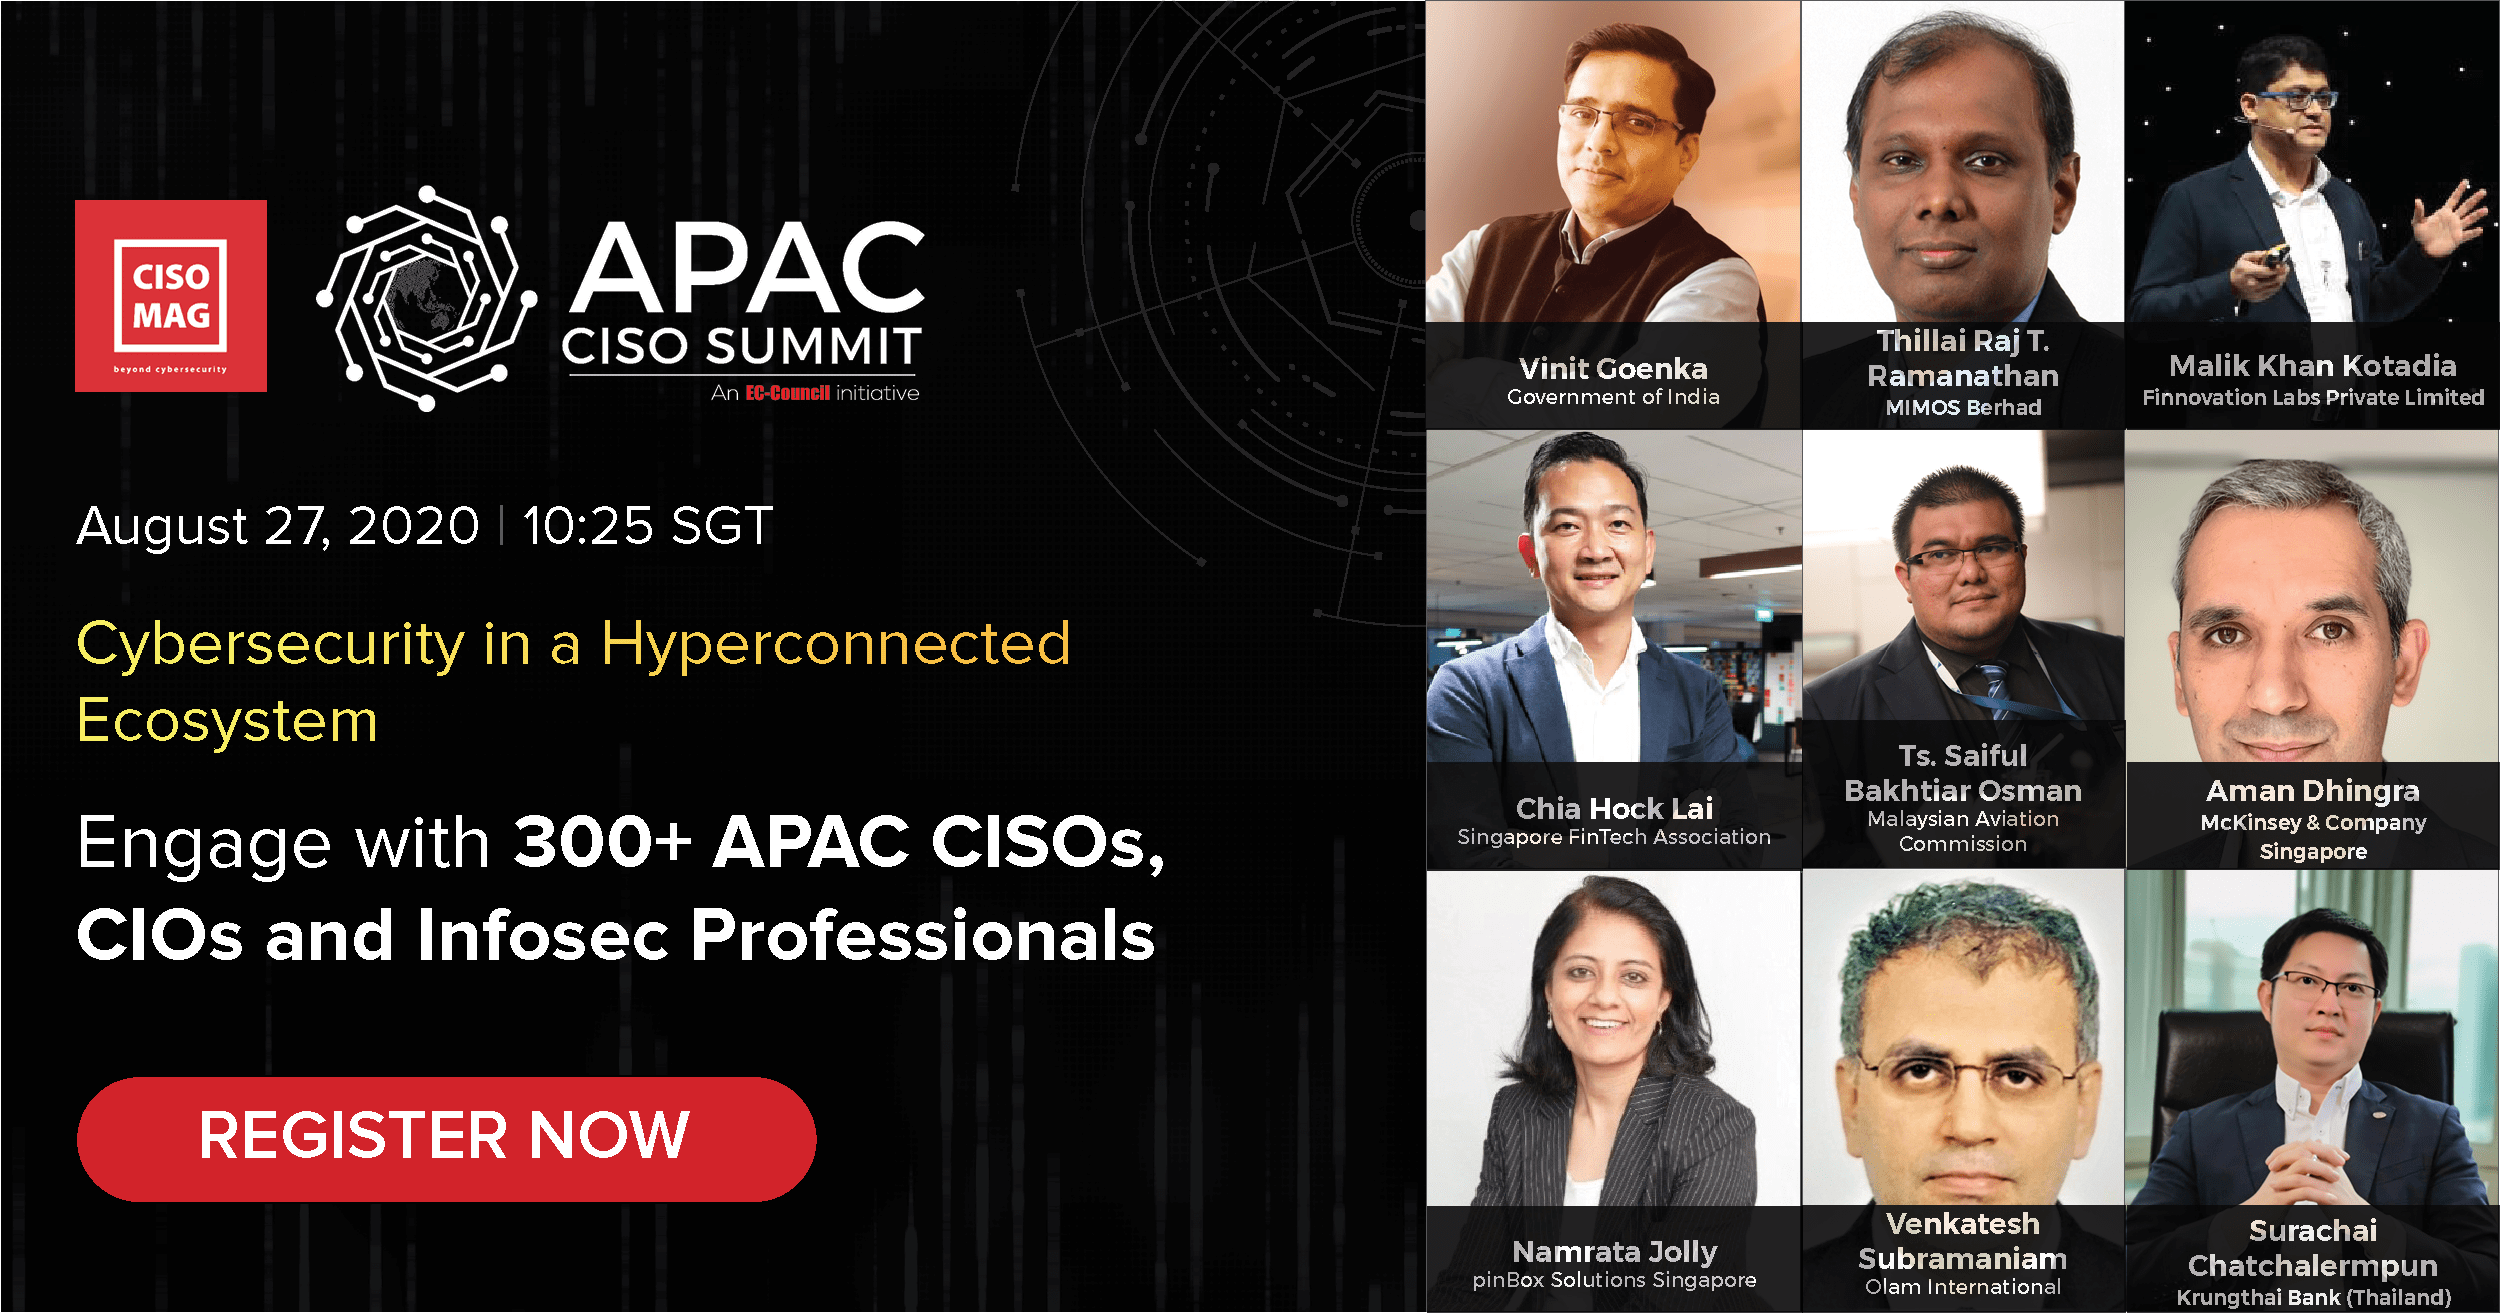 EC- Council's CISO MAG is proud to announce The APAC CISO Summit, themed 'Cybersecurity in a hyperconnected ecosystem,' on 27th Aug 2020